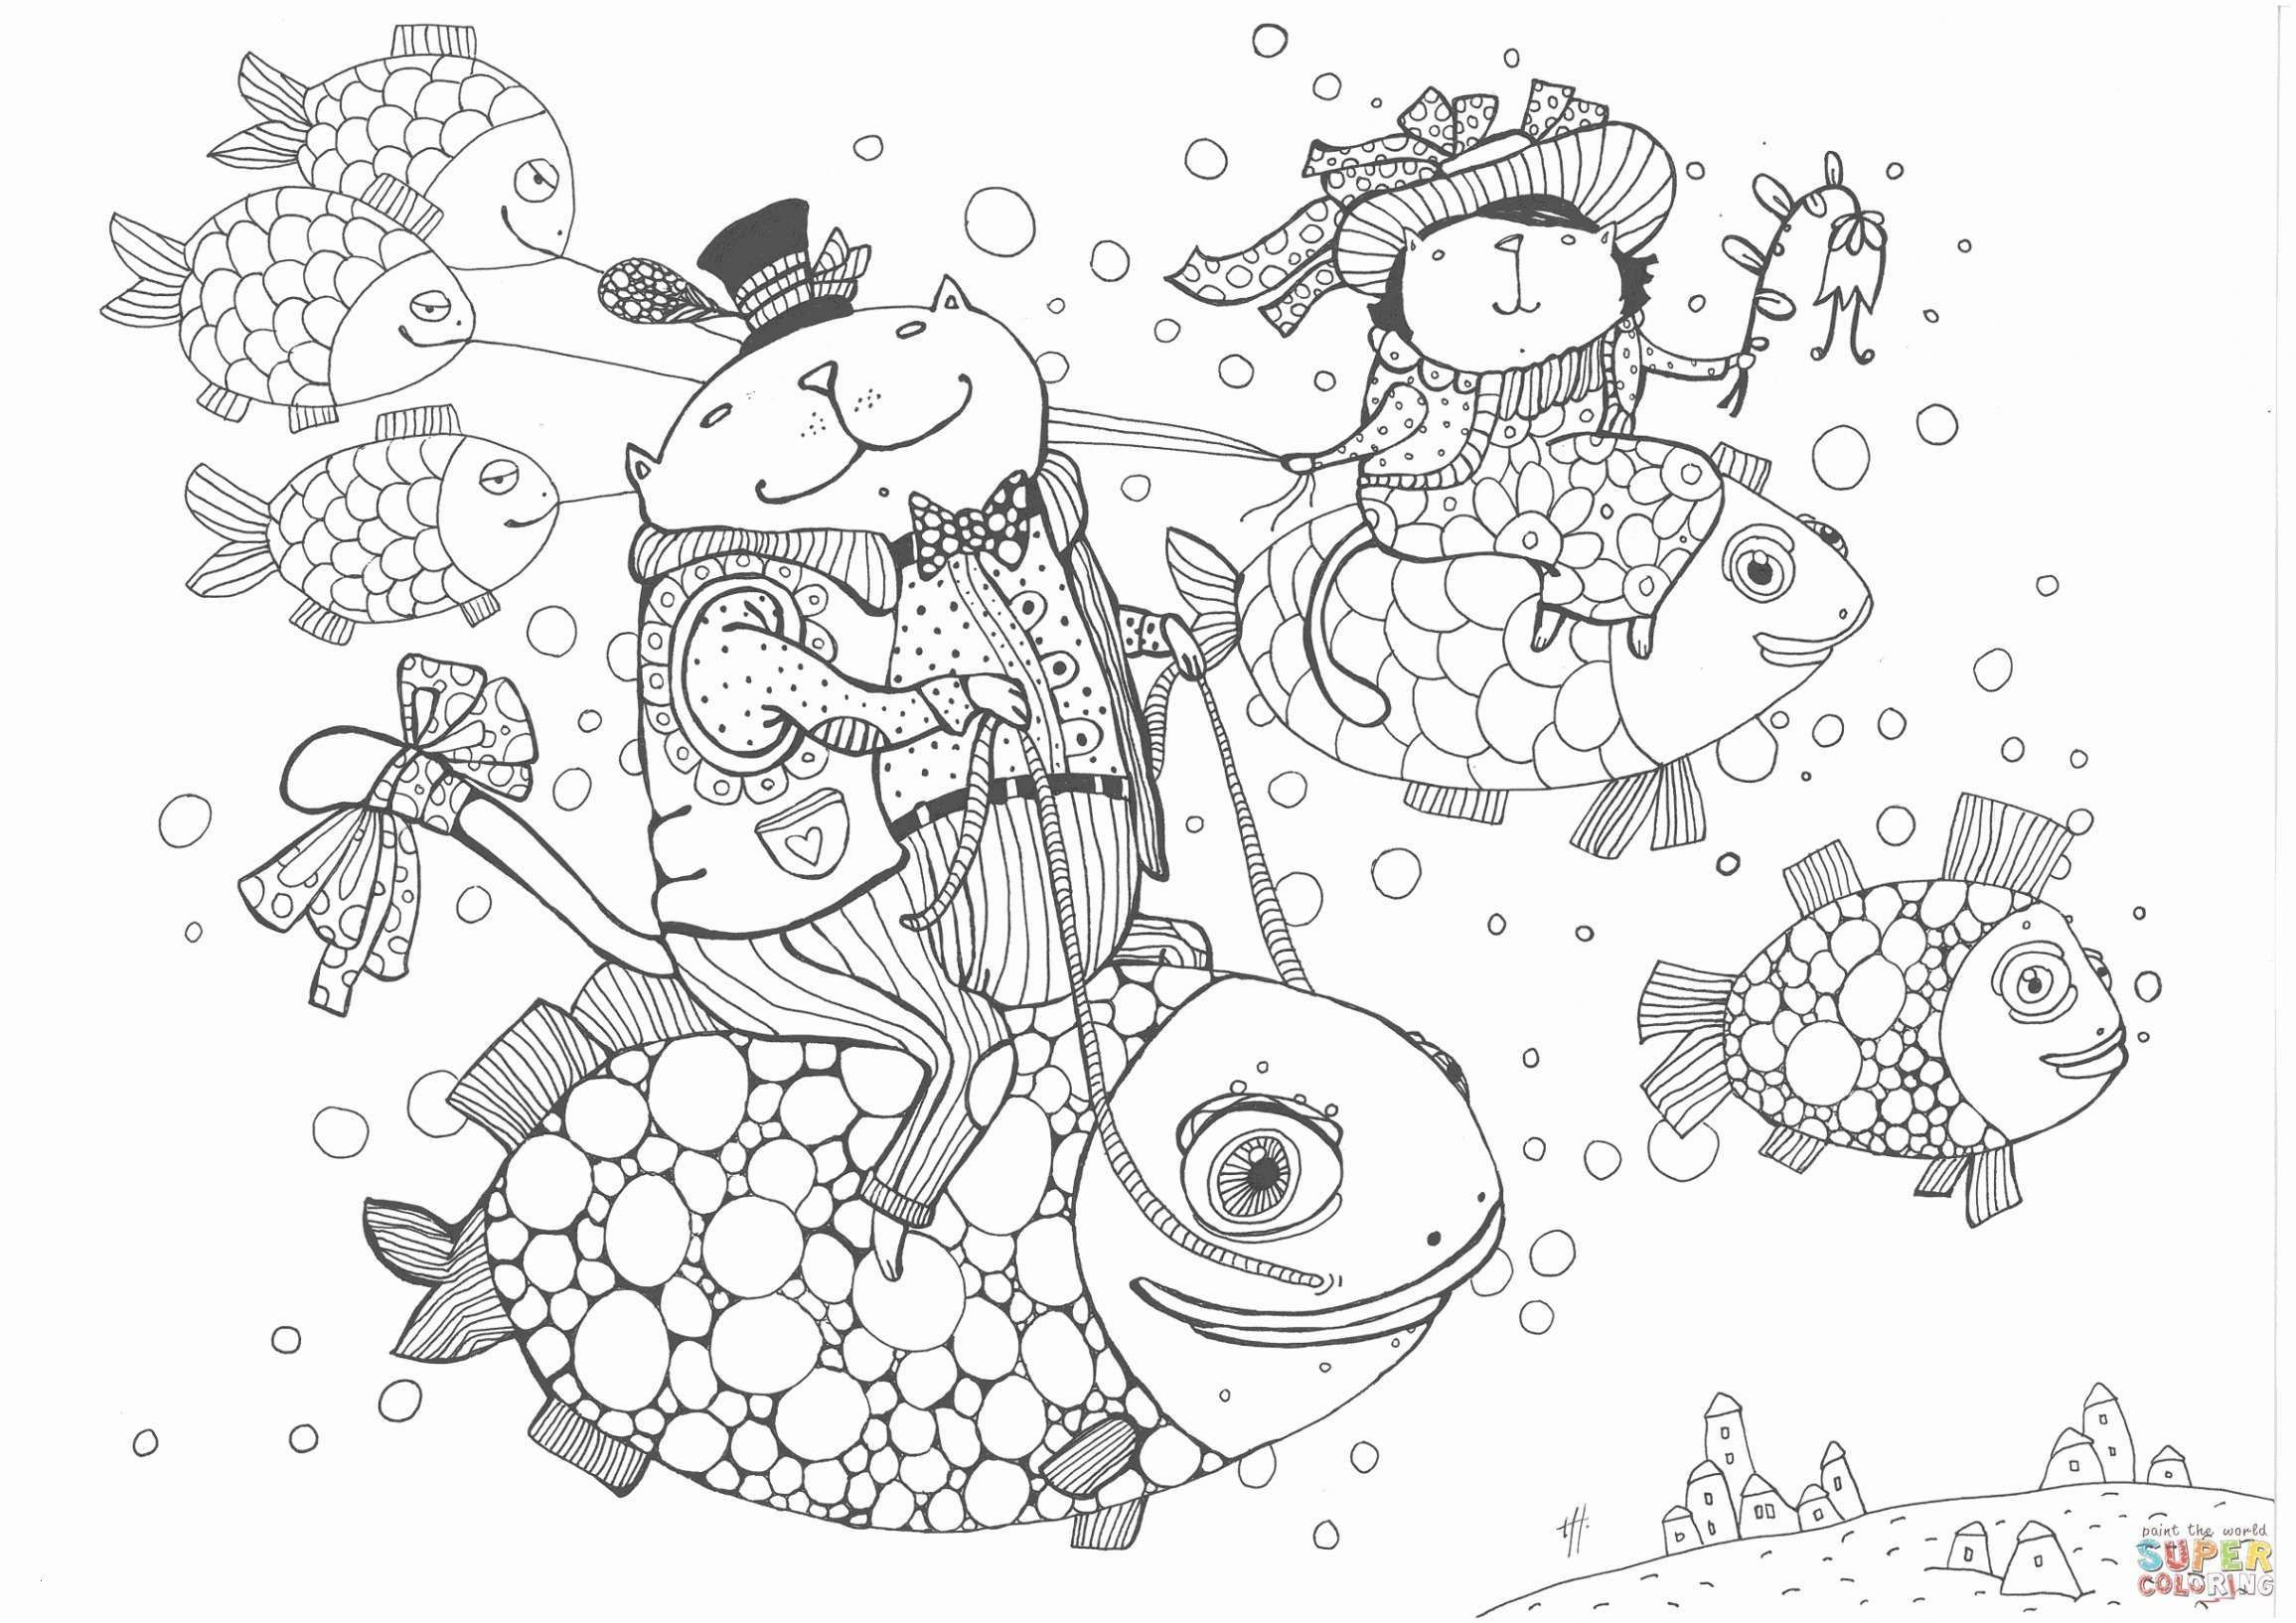 Math Christmas Coloring Pages Printable With Of Spongebob Squarepants In Free